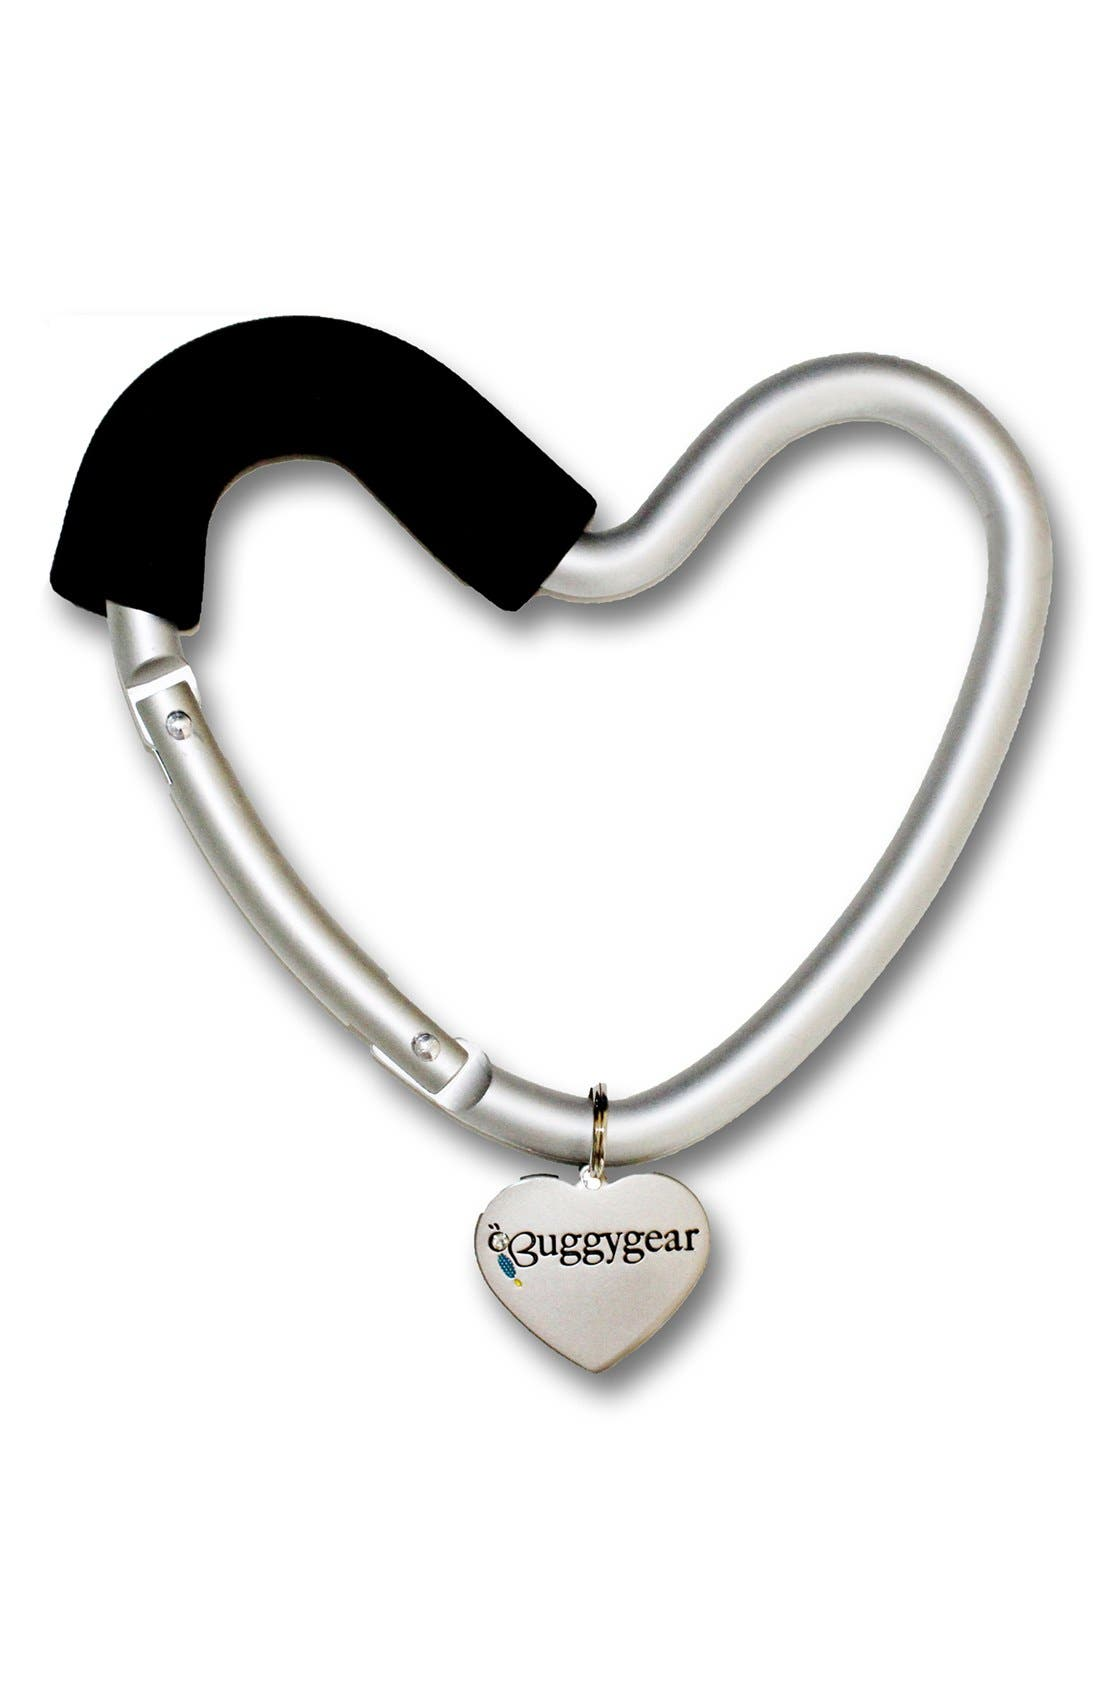 Buggygear 'Buggy Heart Hook' Stroller Bag Hanger,                             Alternate thumbnail 2, color,                             Silver/ Black